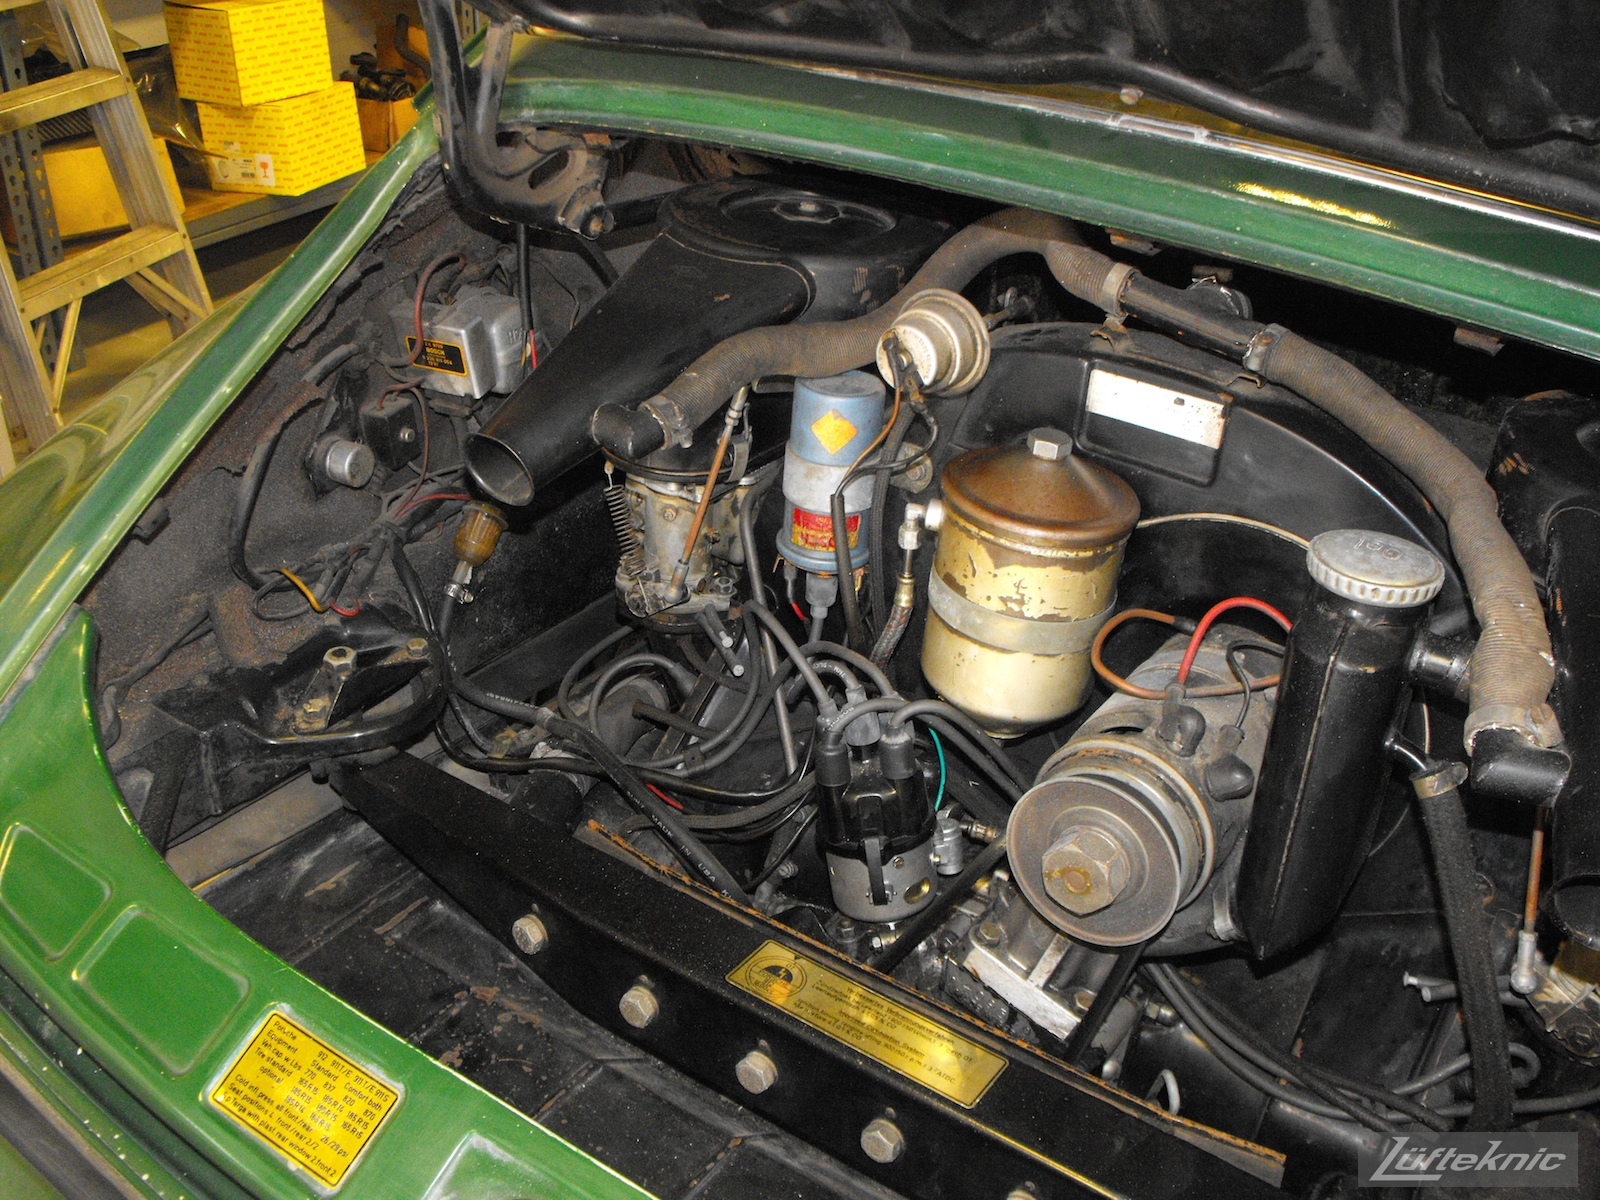 An overall picture of the engine bay of an Irish Green Porsche 912 undergoing restoration at Lufteknic.